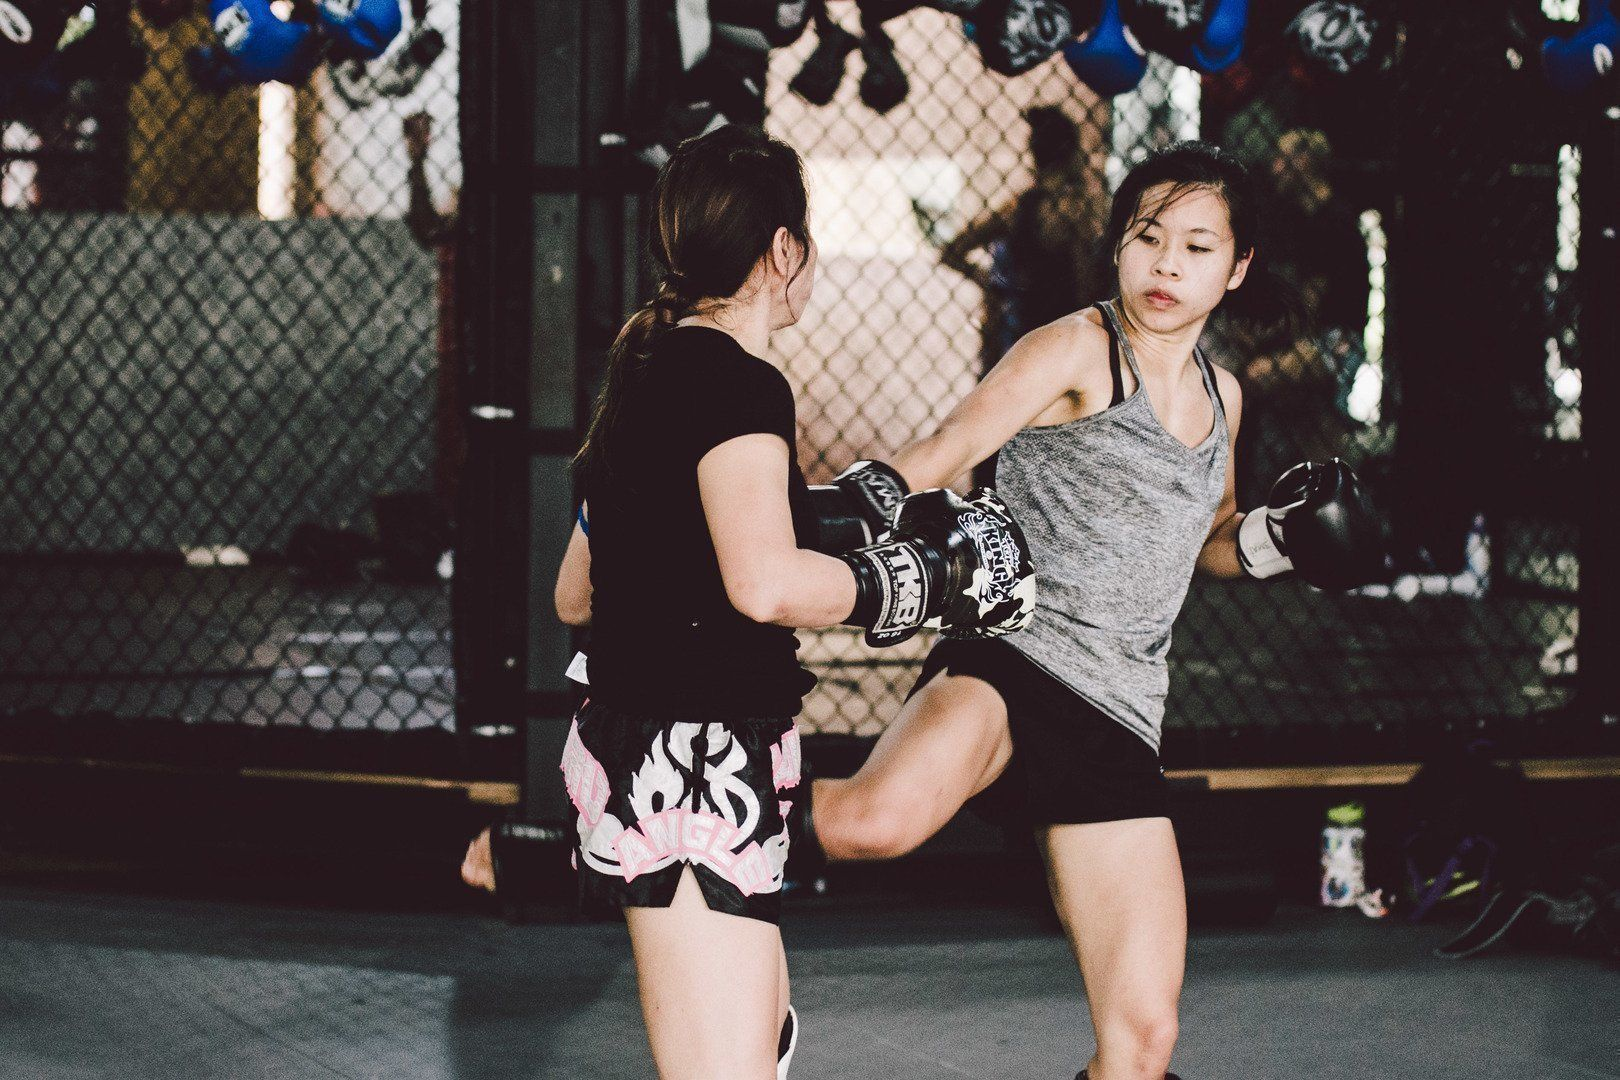 Double Your Kicking Power With These Tips - Evolve Daily